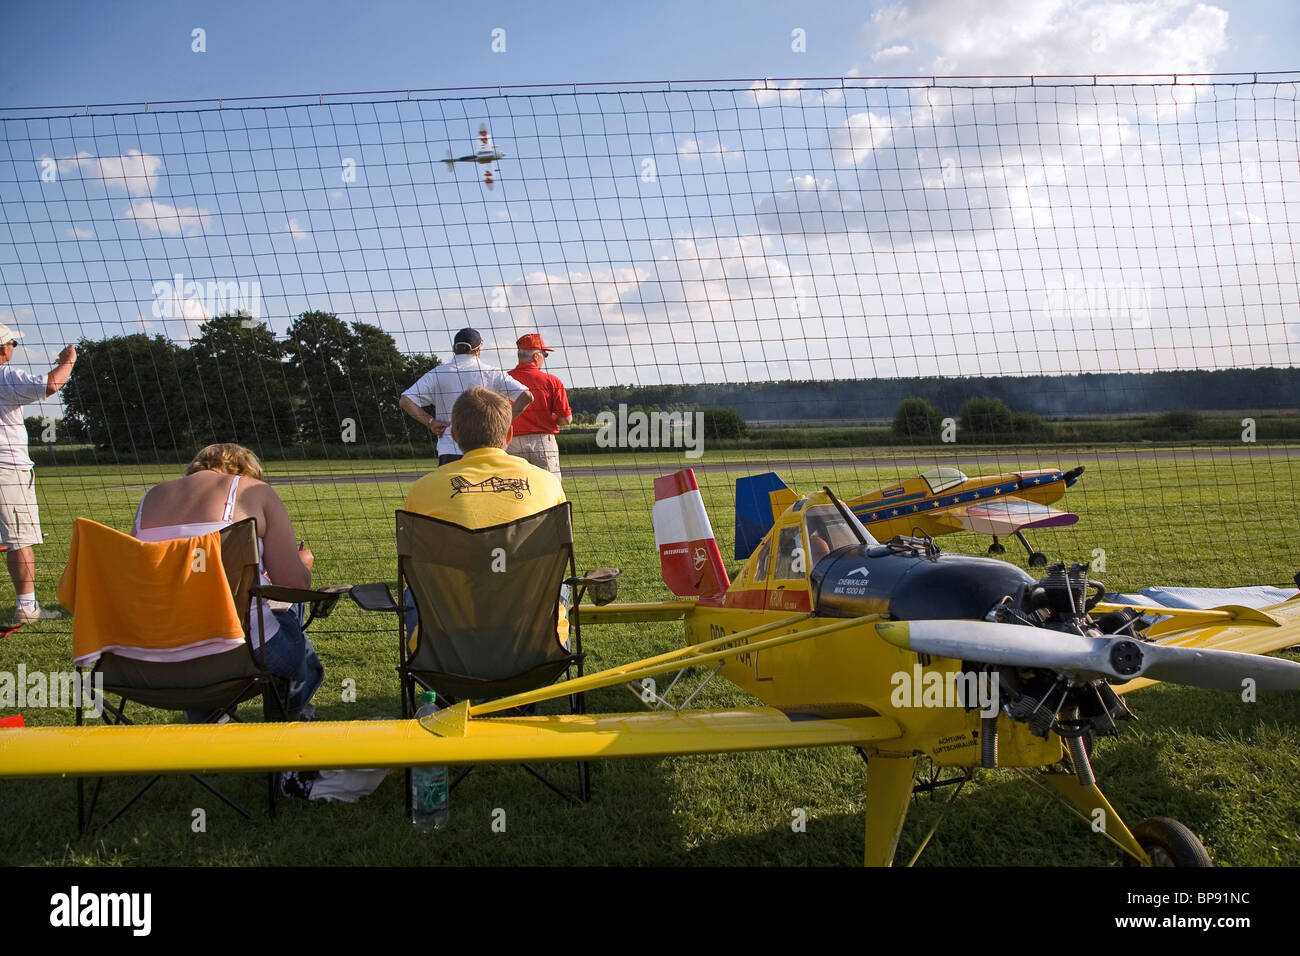 Model aircrafts, airshow, Lehrte, Lower Saxony, Germany - Stock Image